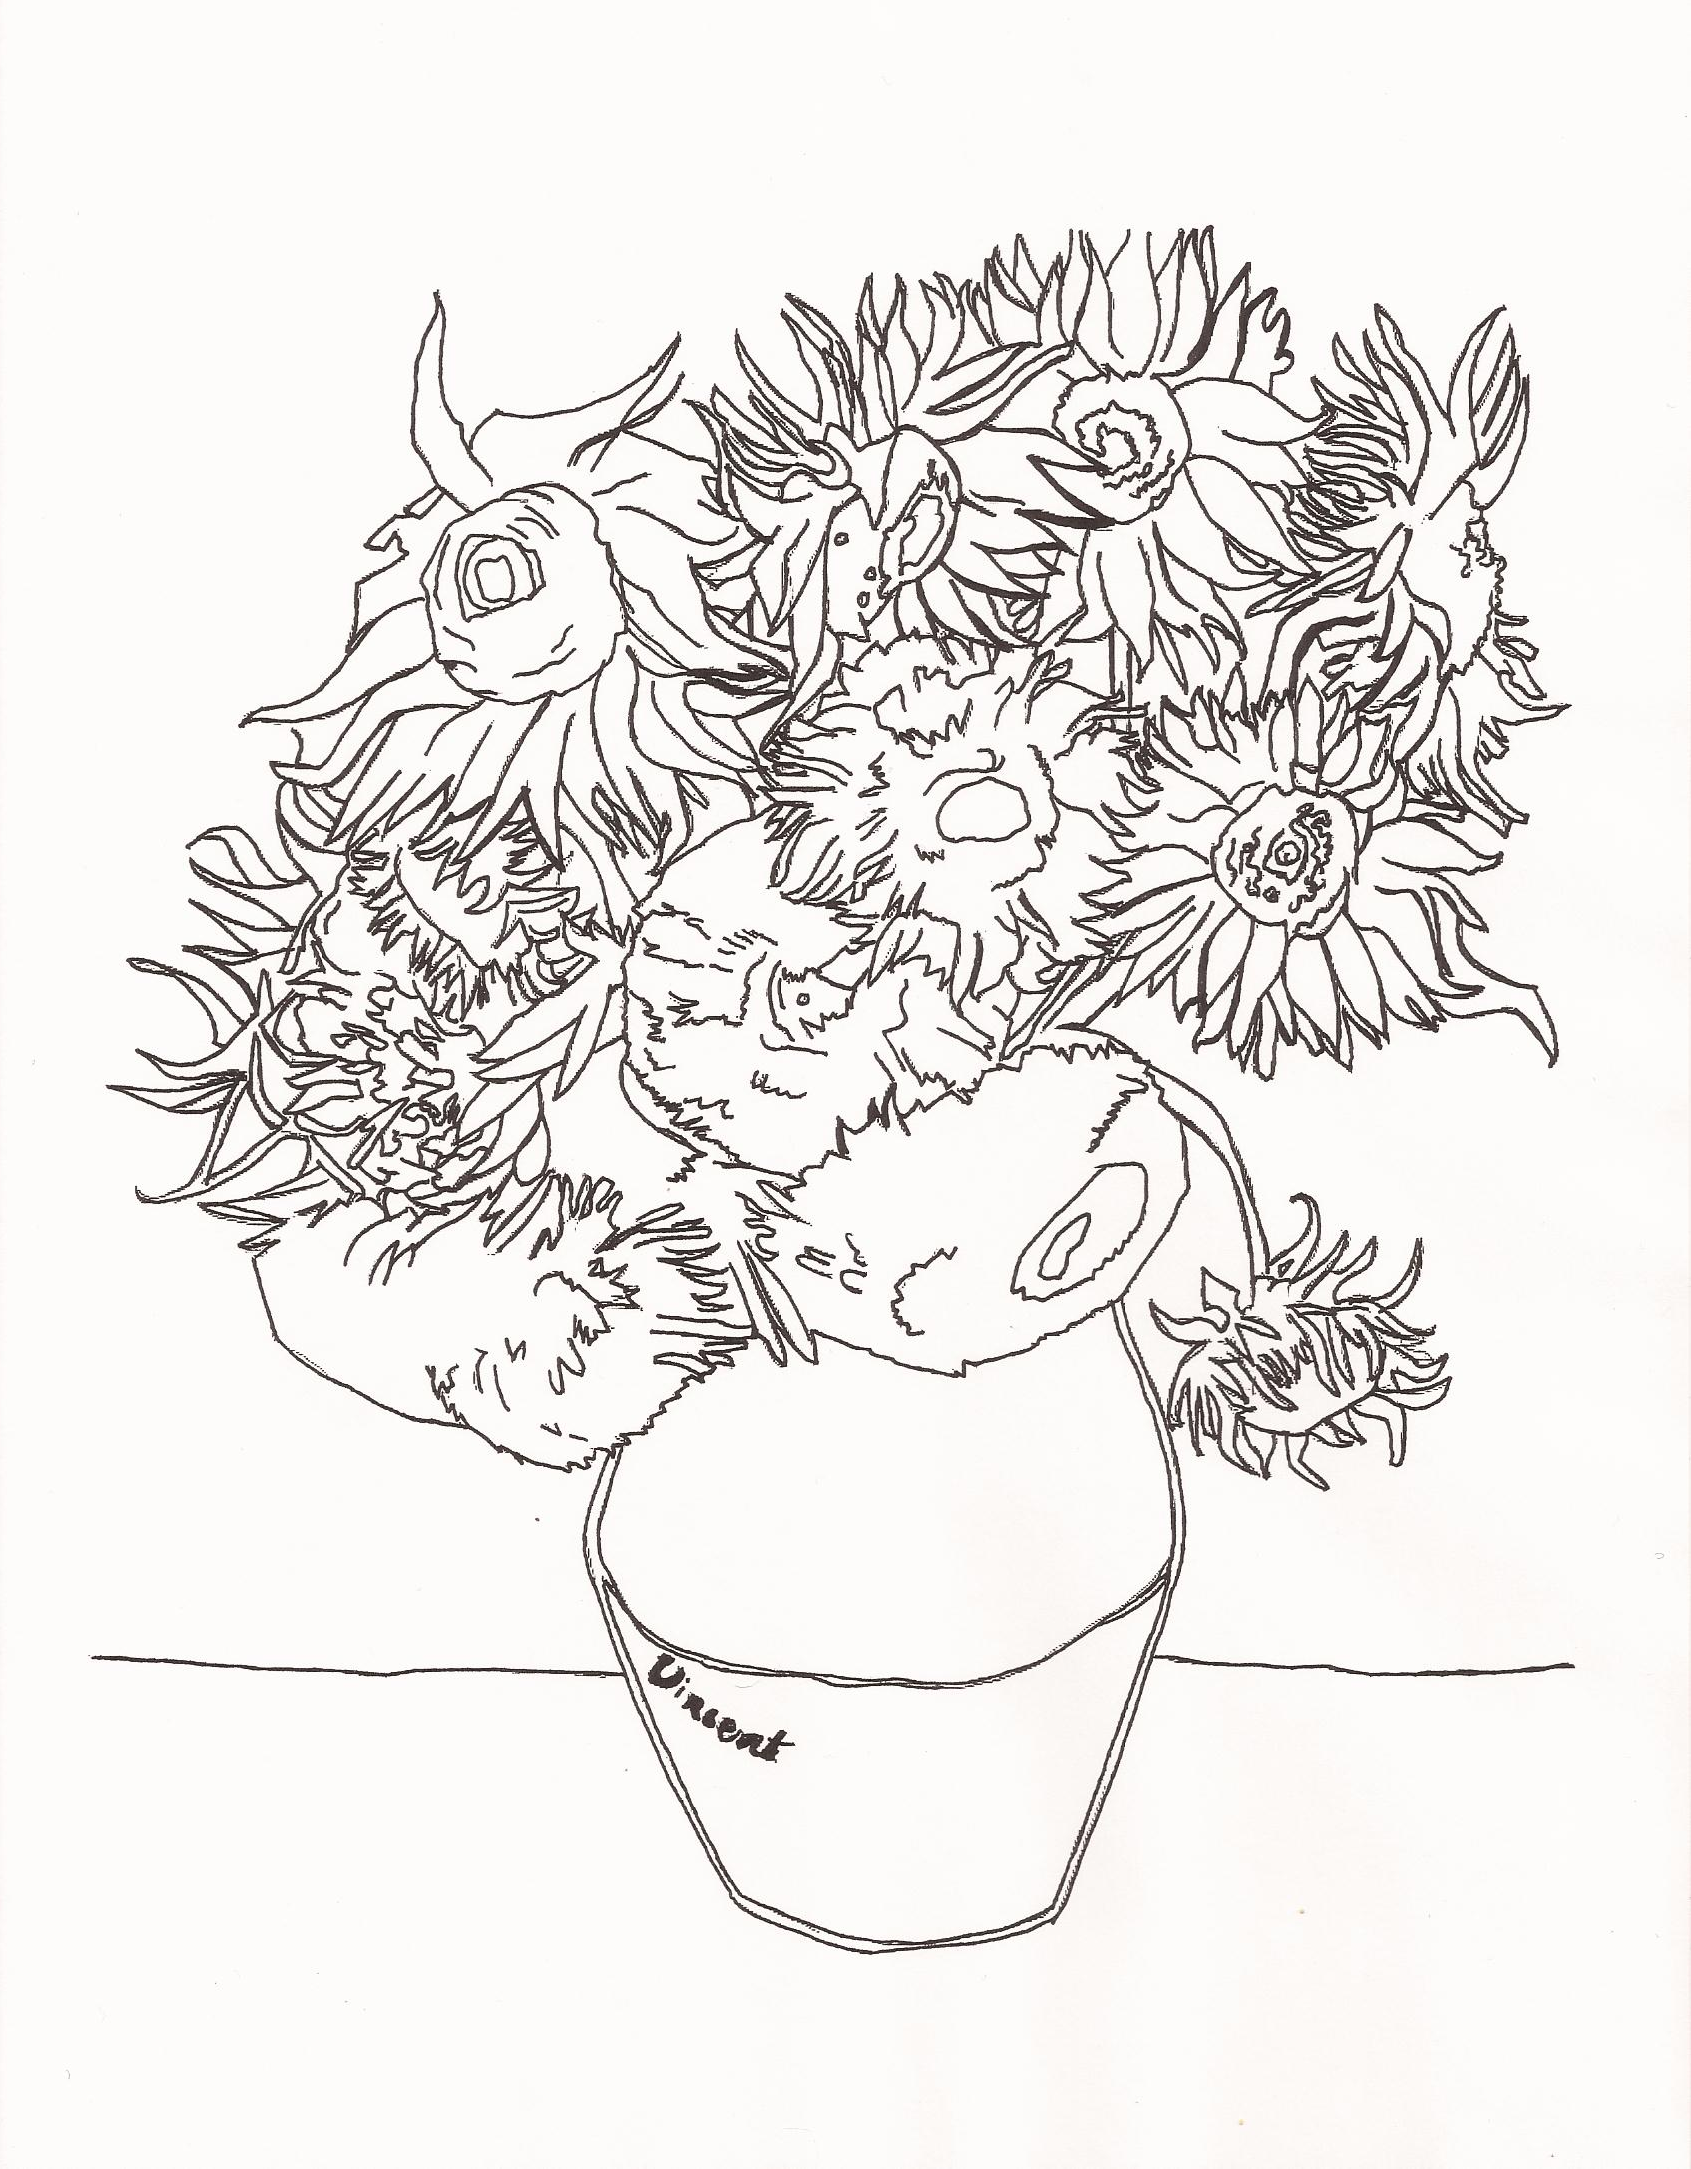 sunflower coloring pages google search adult coloringcoloring pagesvan goghsunflowers - Sunflower Coloring Page Van Gogh